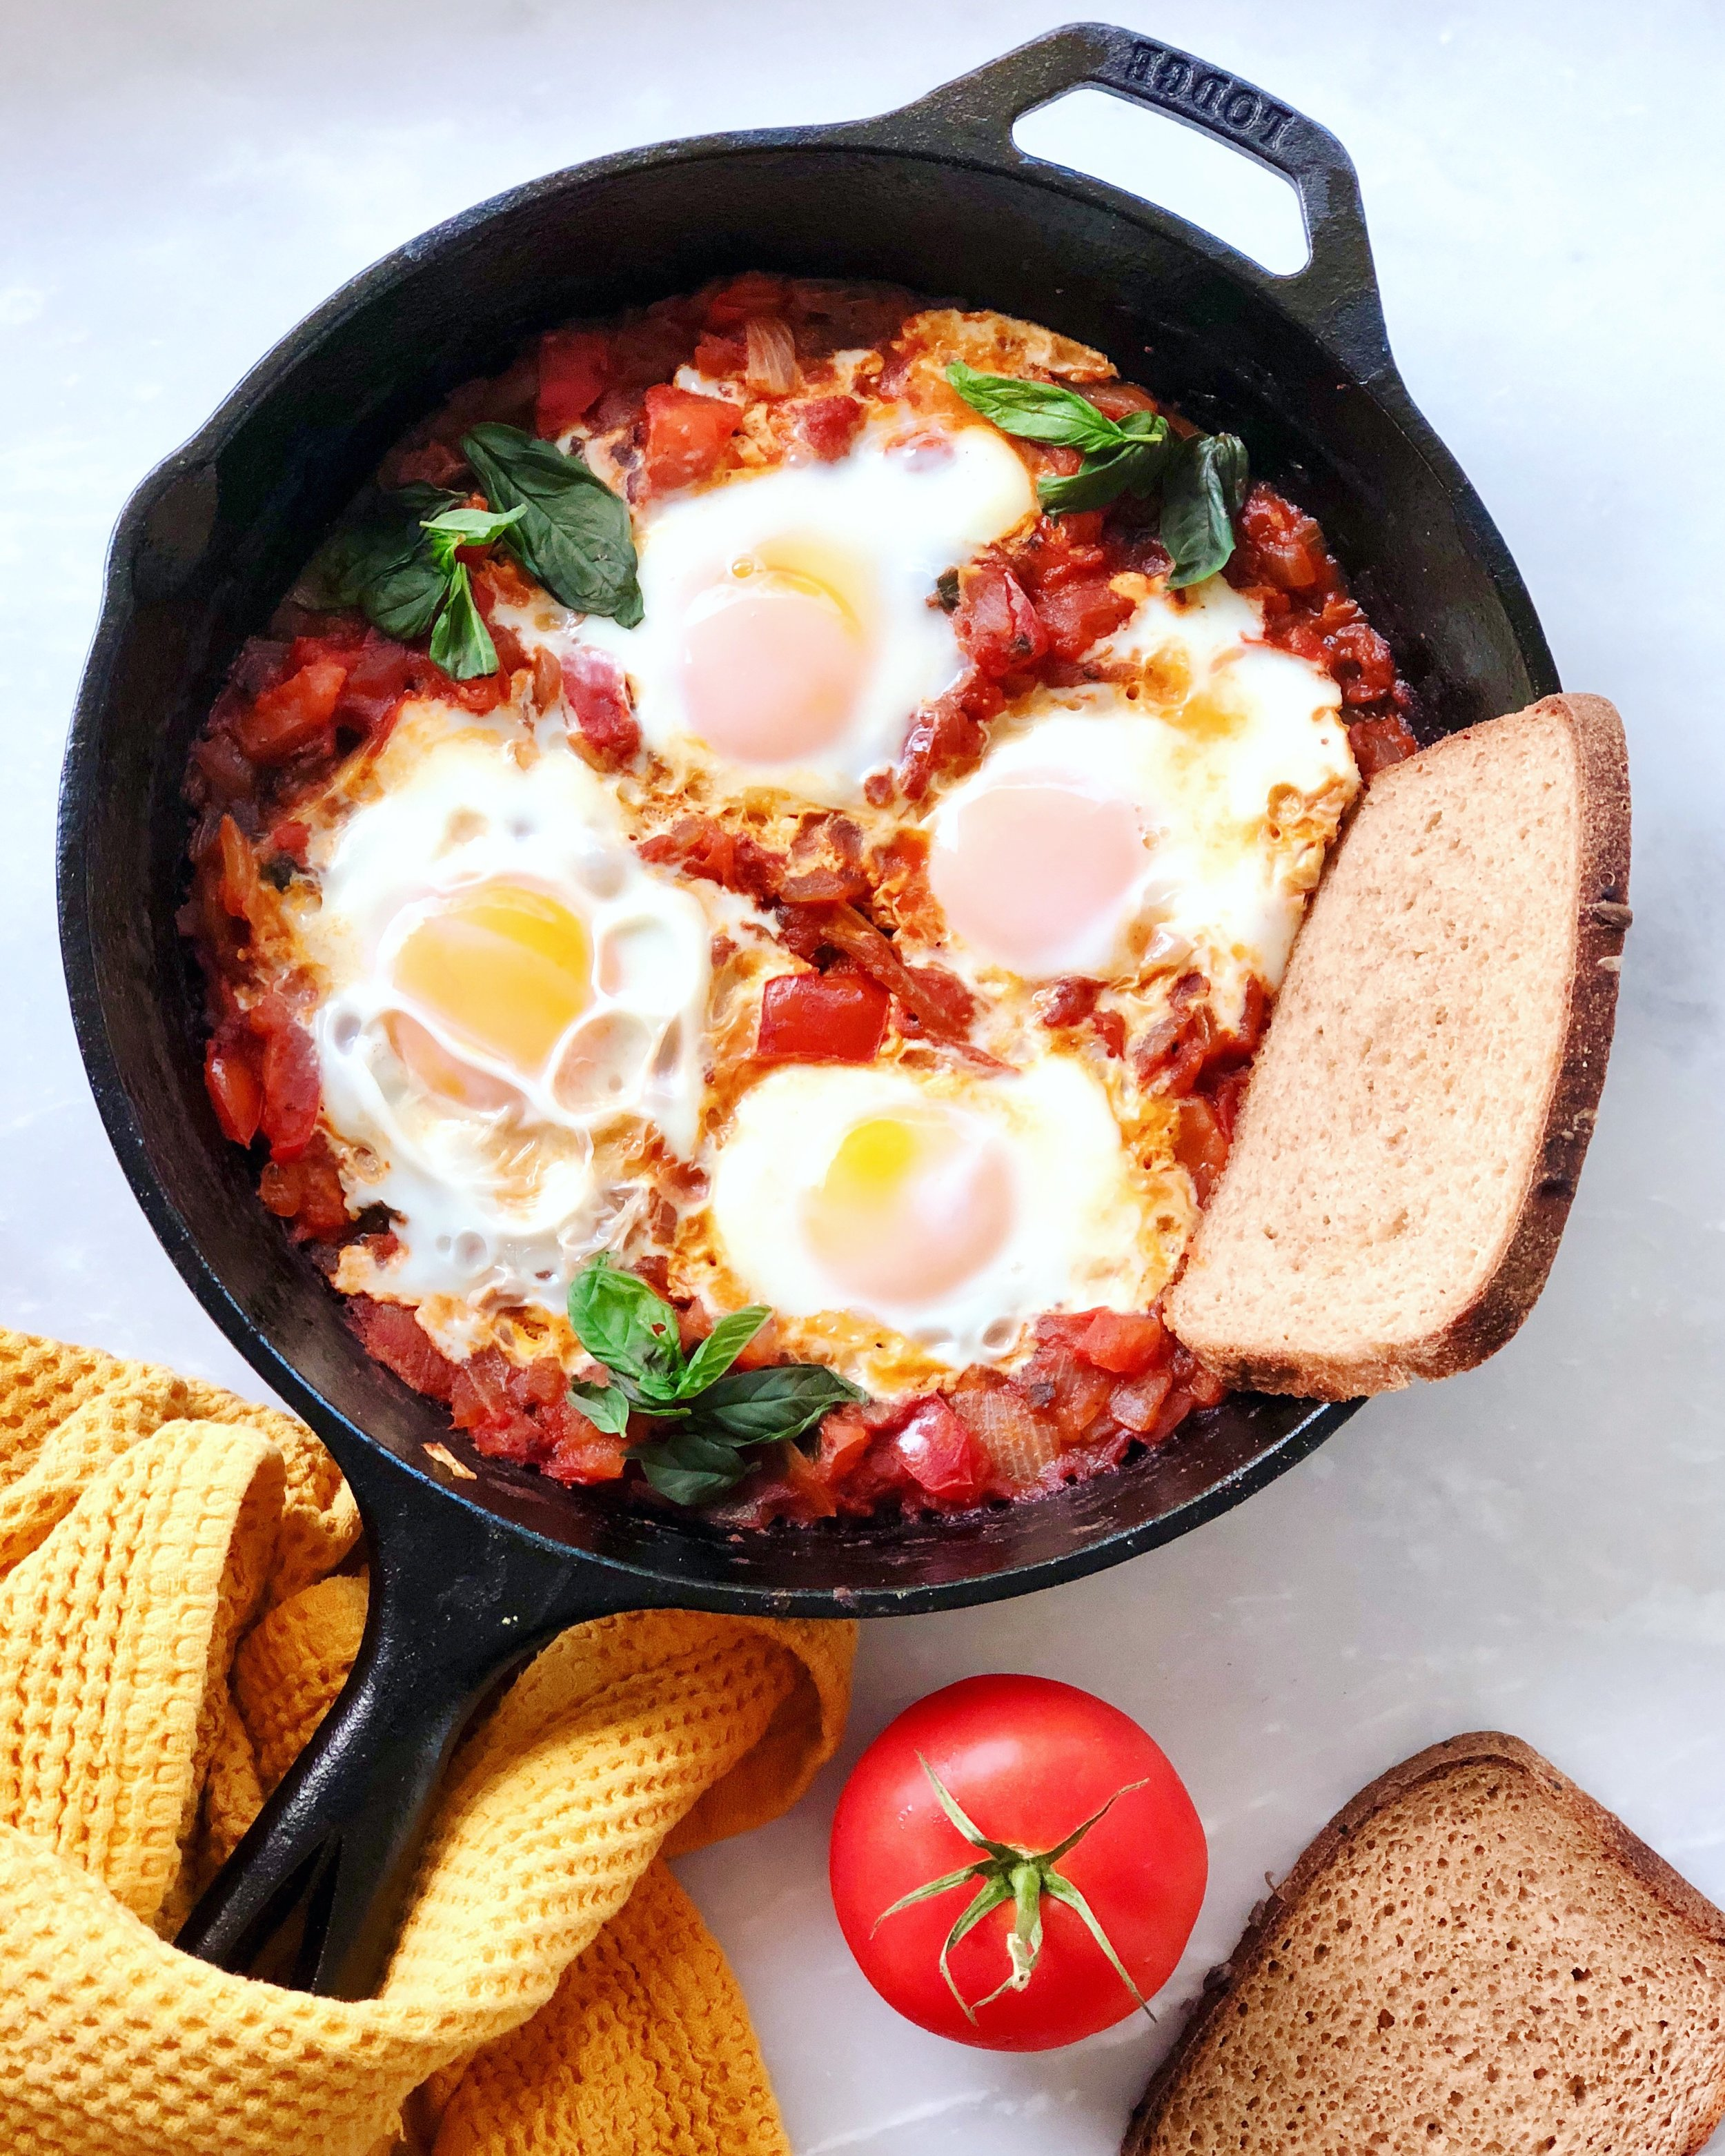 One of my favorite things to make with pasture-raised eggs is shakshuka!